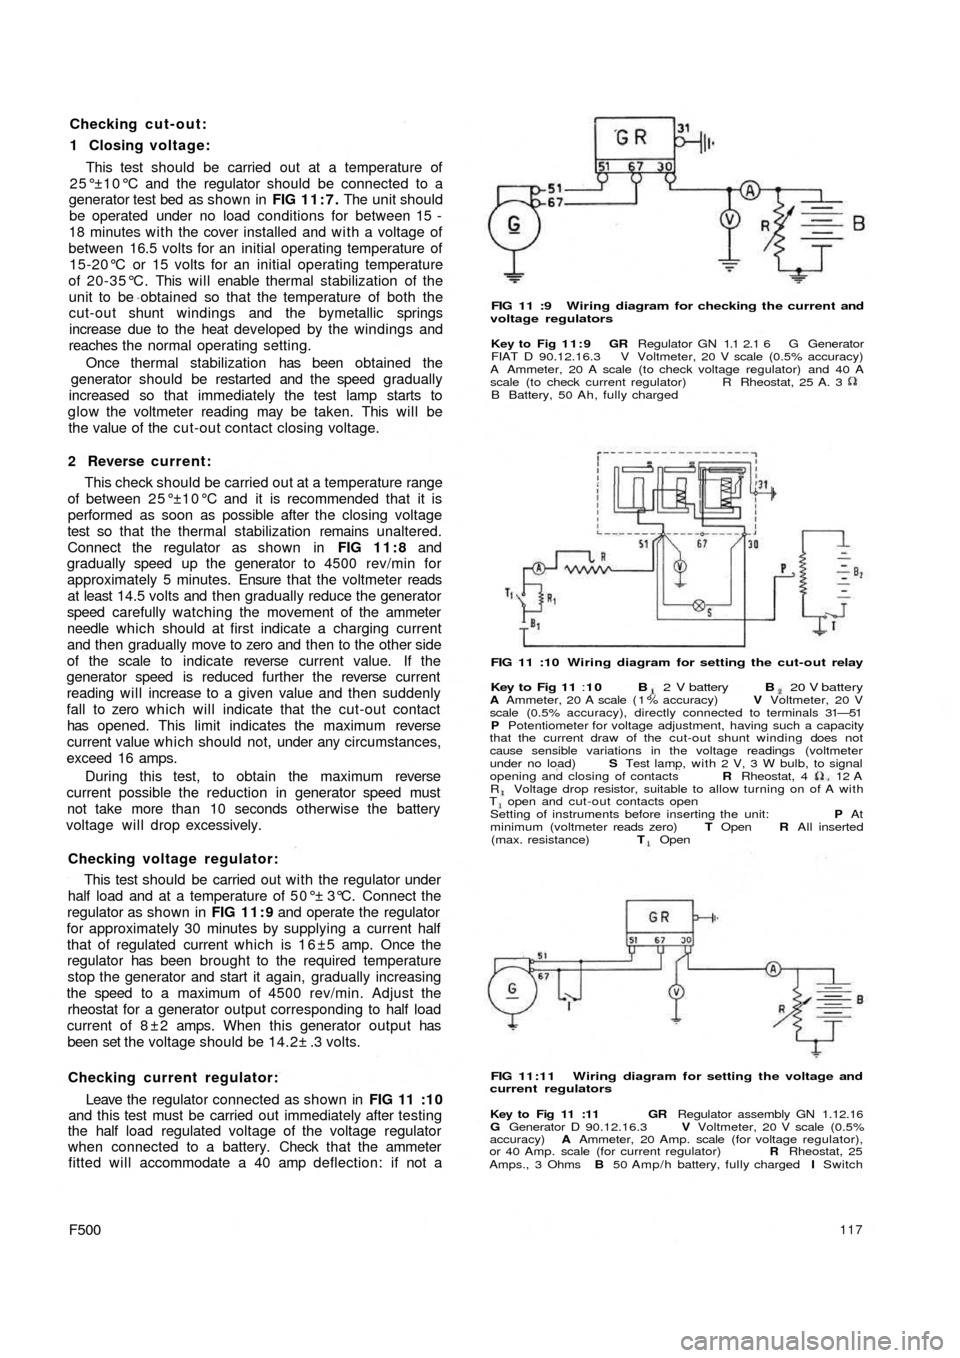 Fiat Abarth Wiring Diagram Library Diagrams For A H 50 11 Lift Master 500 1960 1 G Workshop Manual Rh Carmanualsonline Info